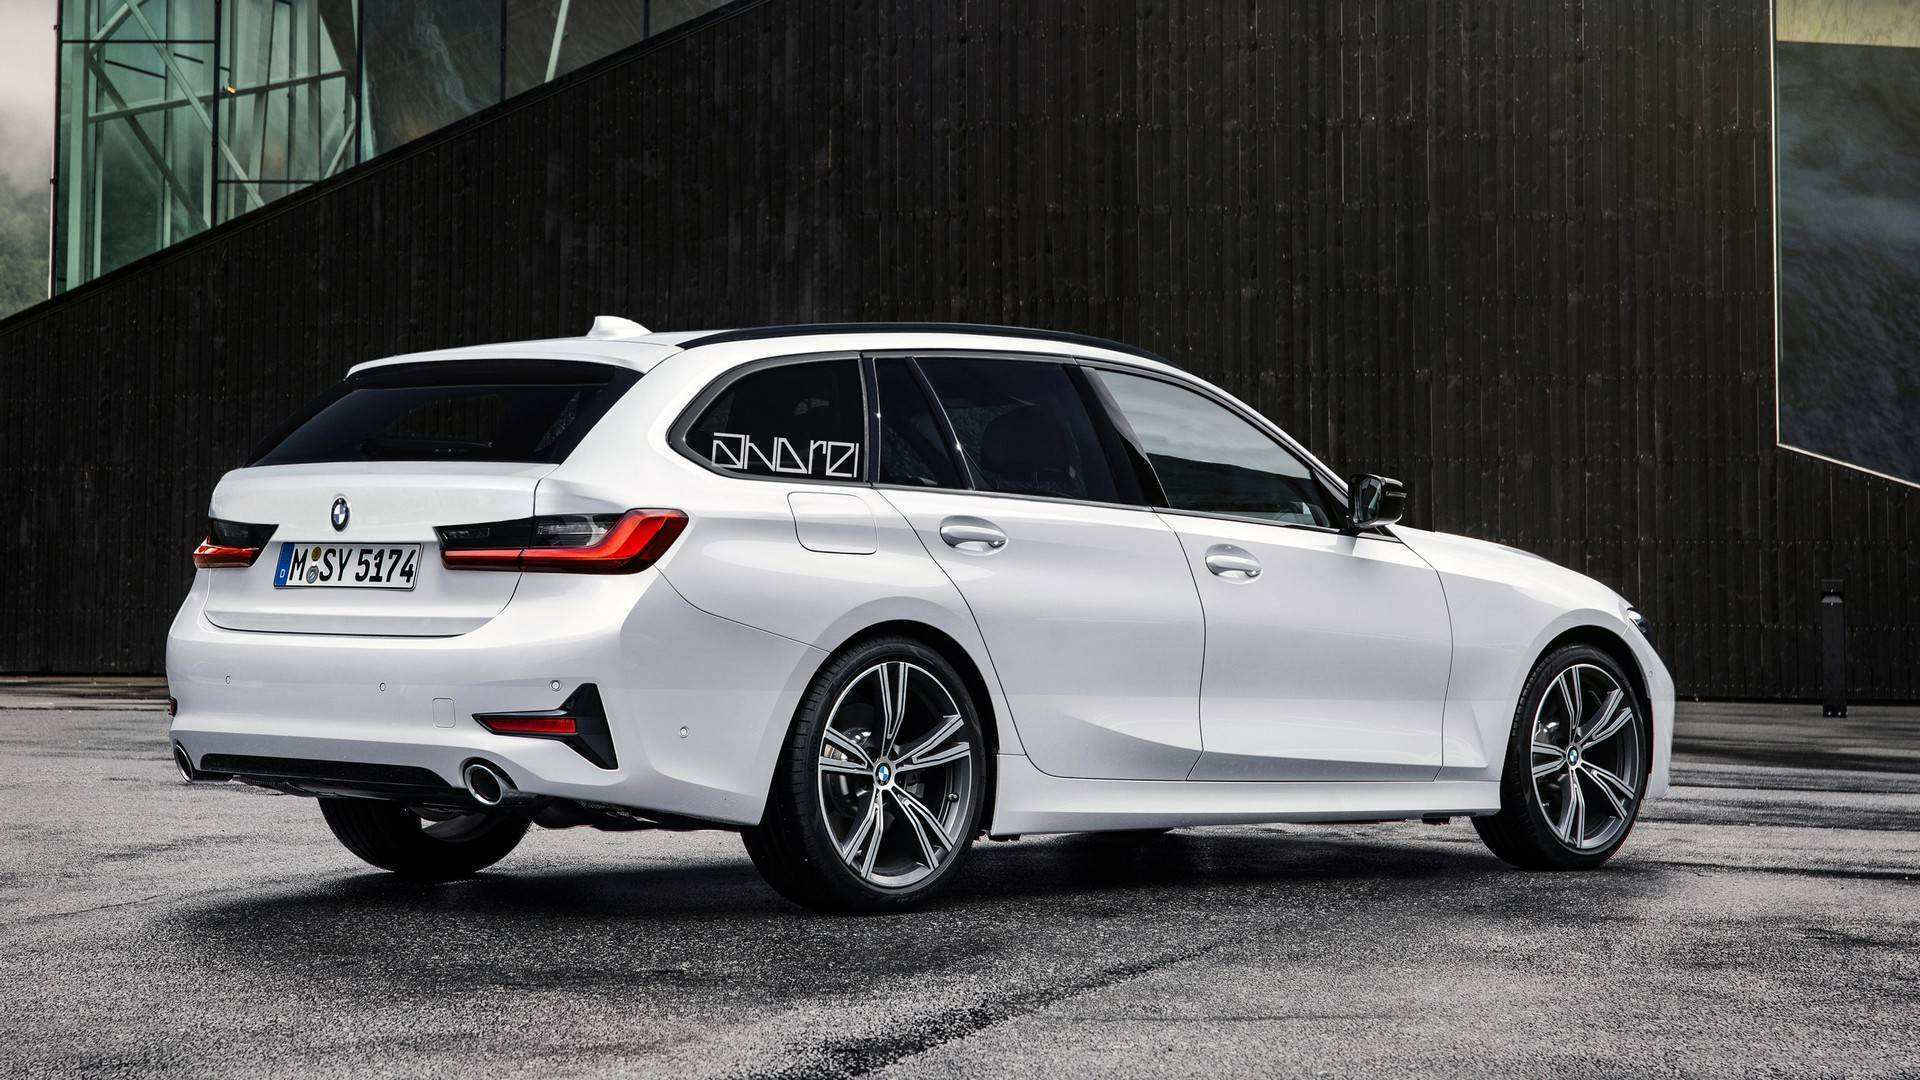 15 Best Review 2020 BMW 3 Series Brings Configurations with 2020 BMW 3 Series Brings